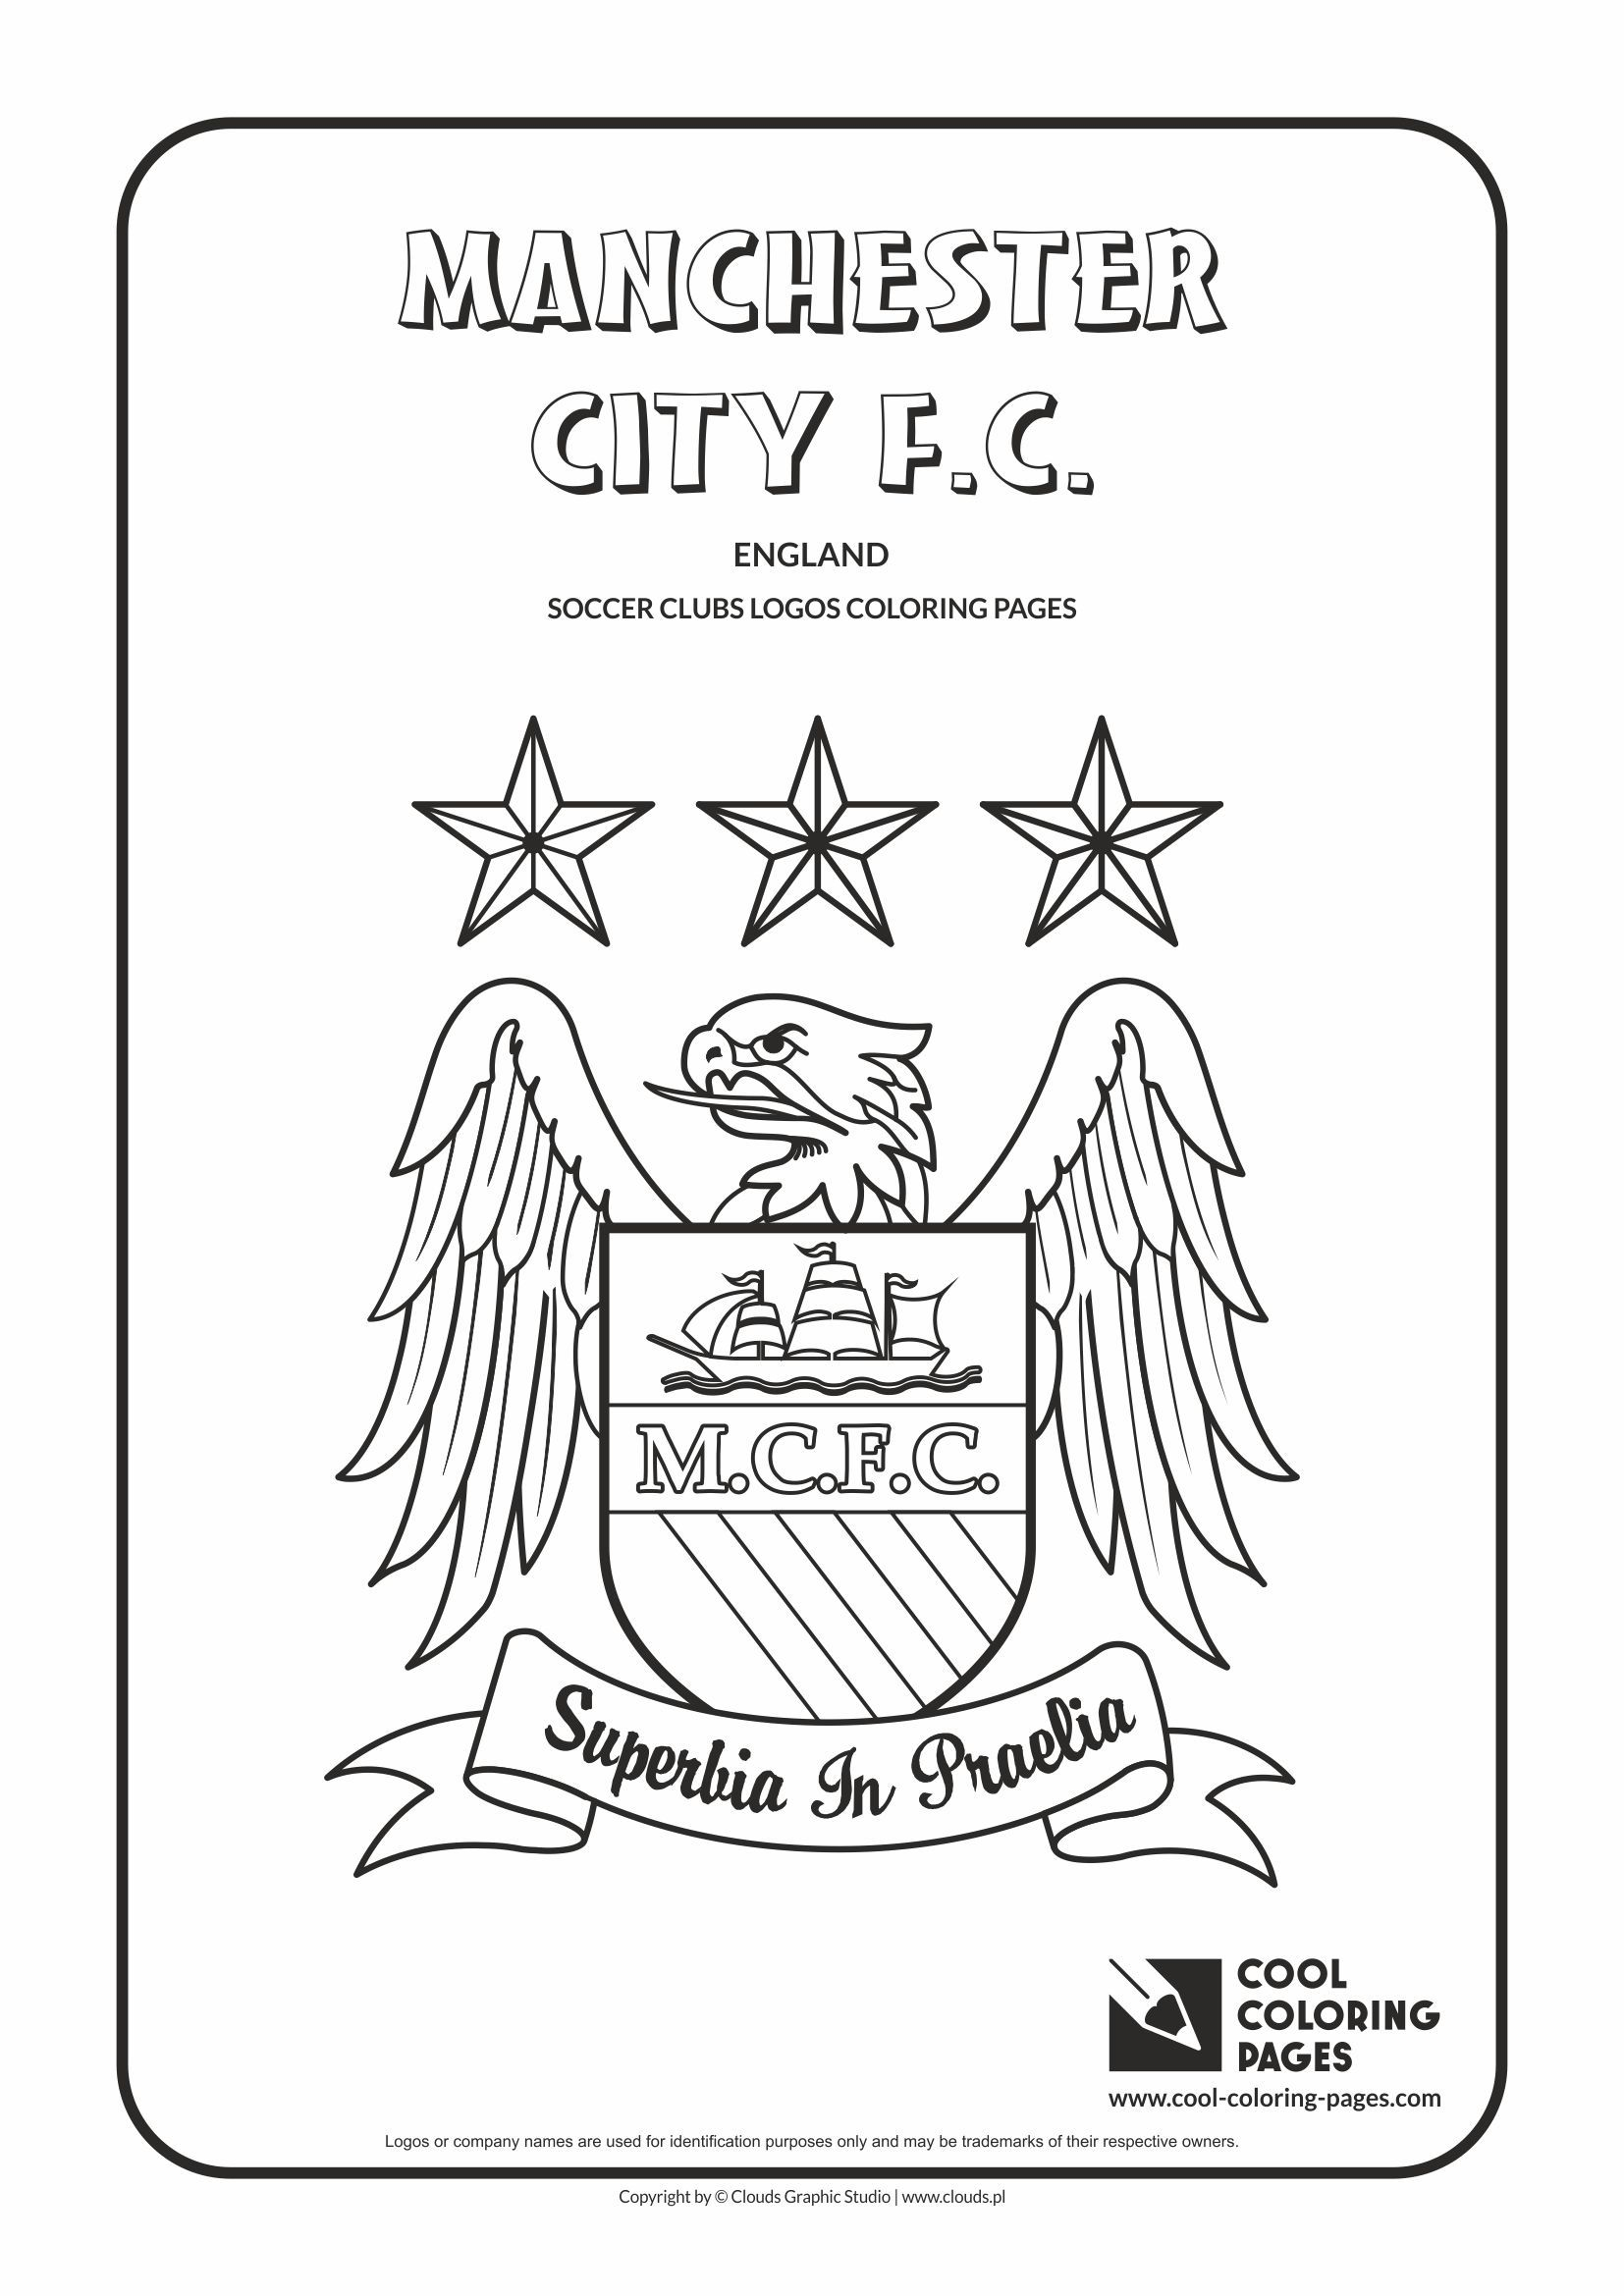 Cool Coloring Pages Soccer Clubs Logos Manchester City FC logo